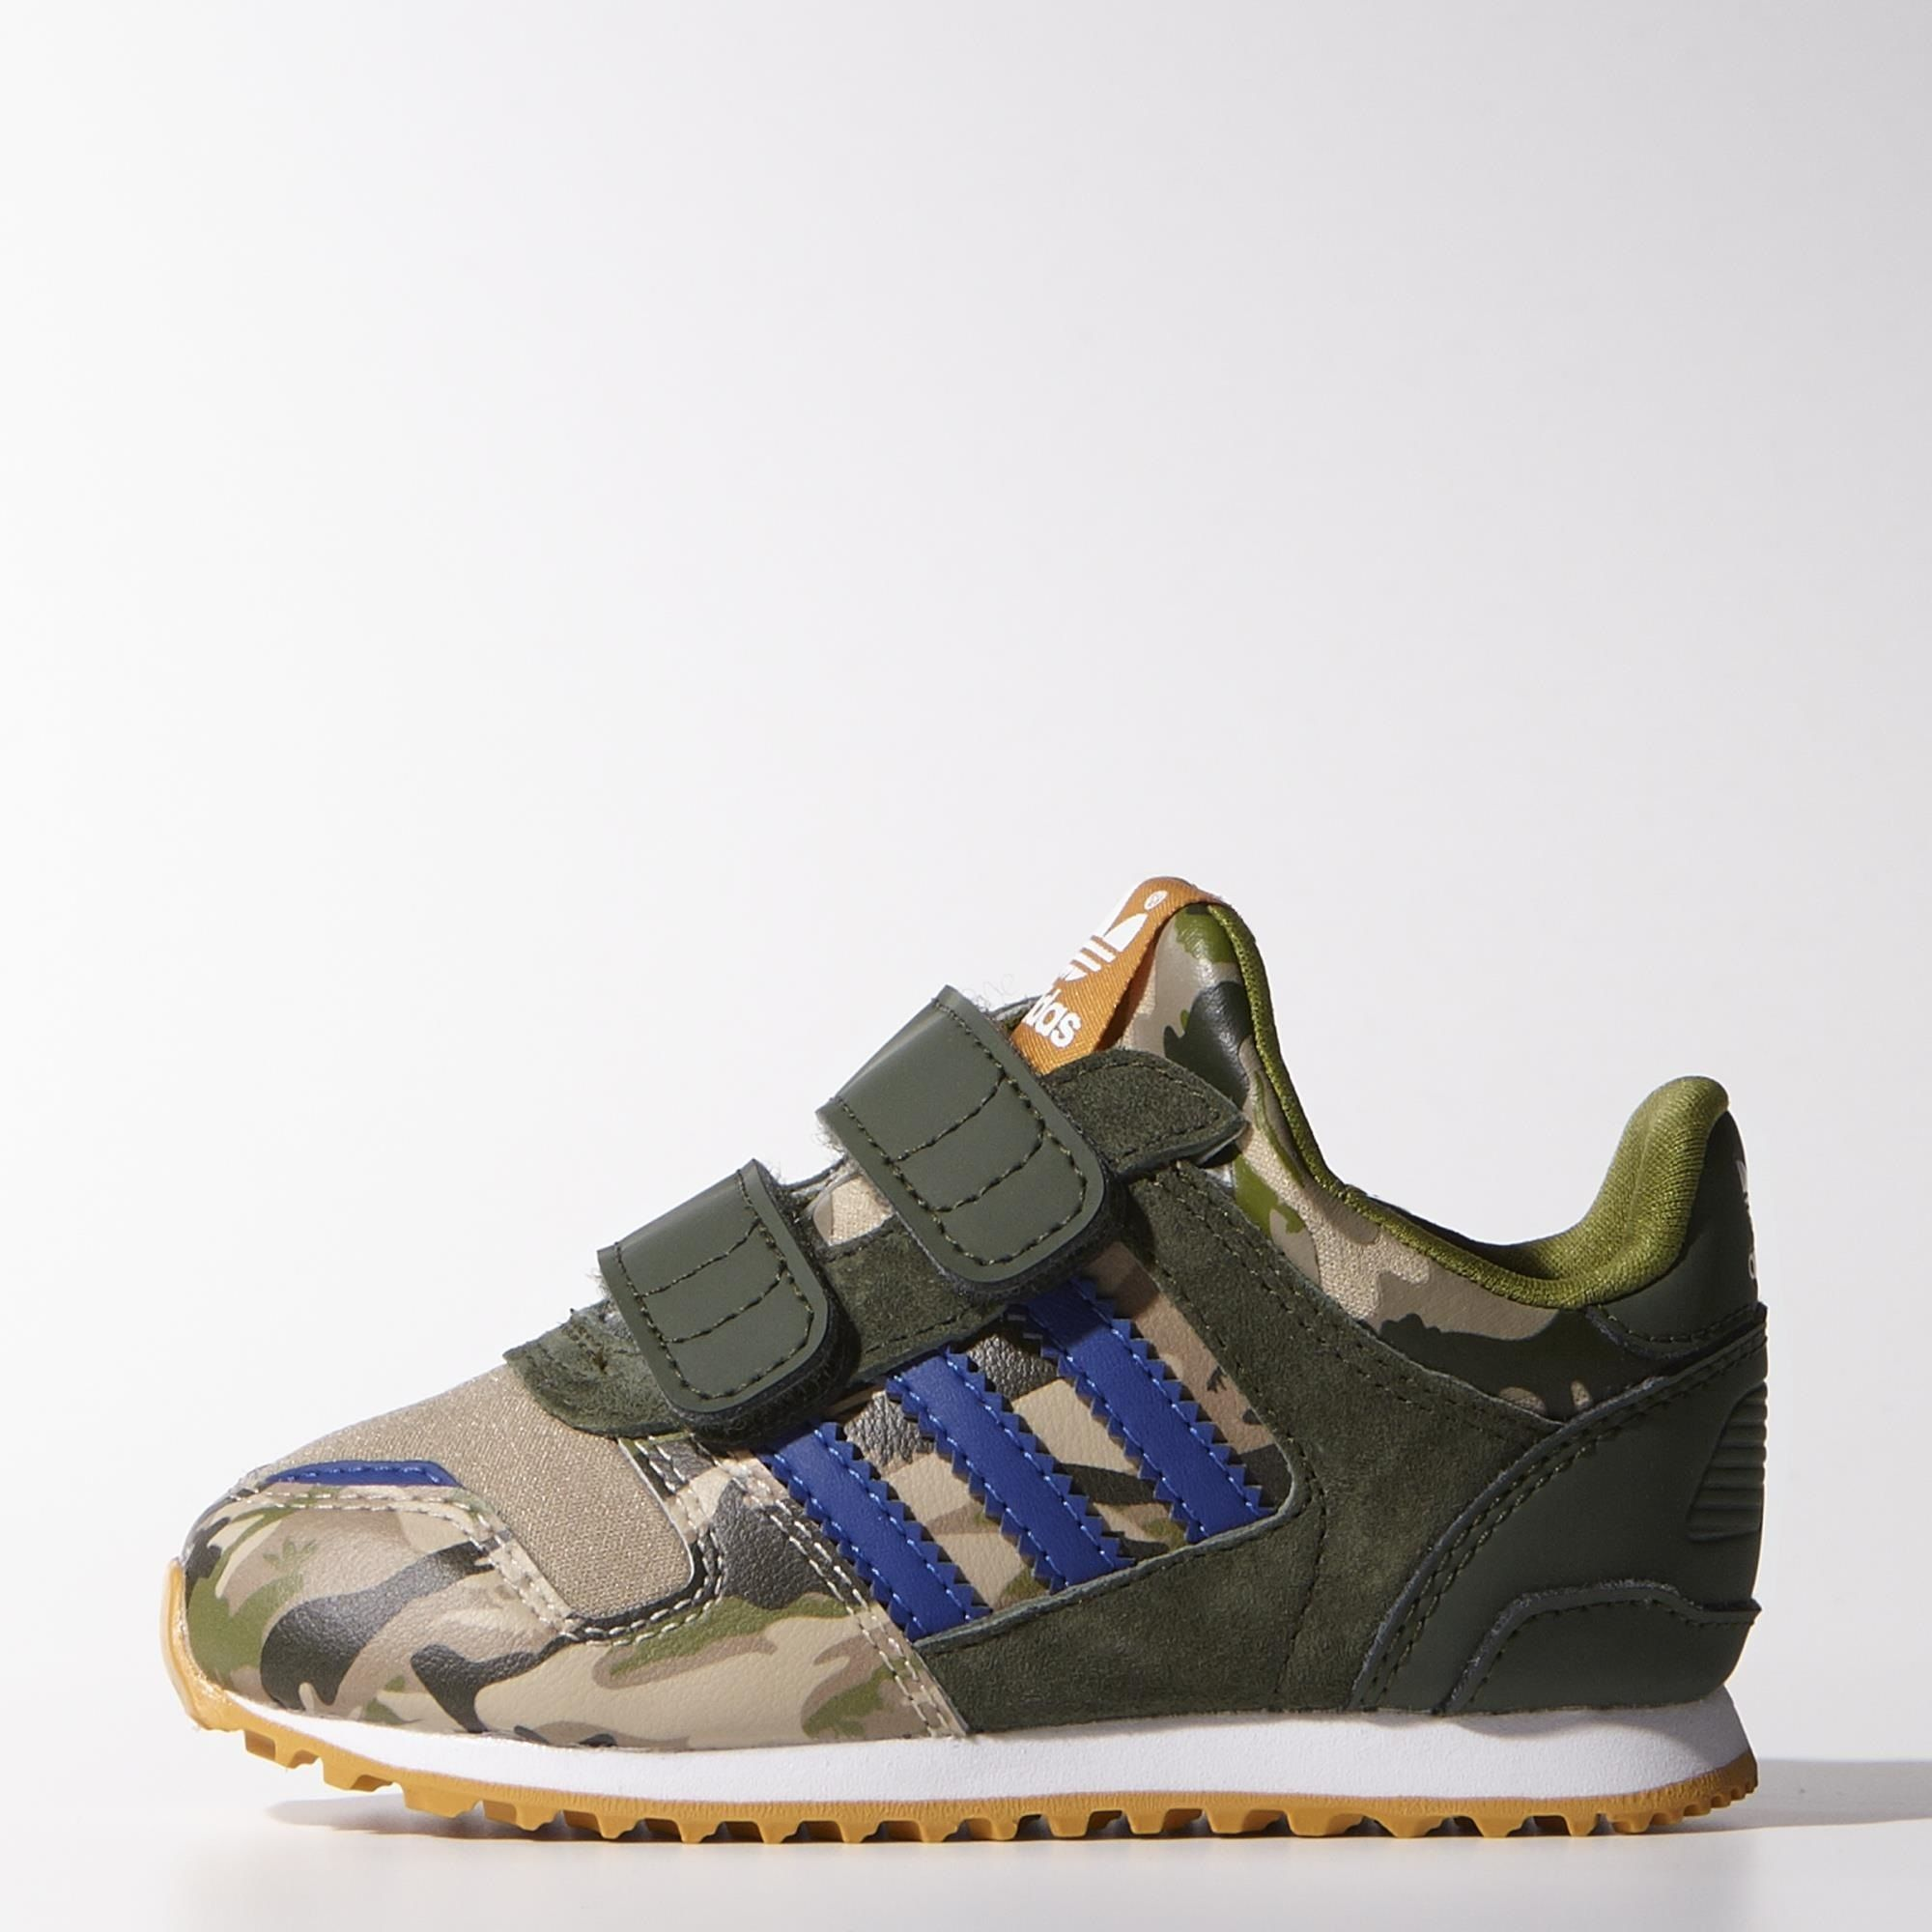 adidas - Infants Dinosaur ZX 700 Shoes